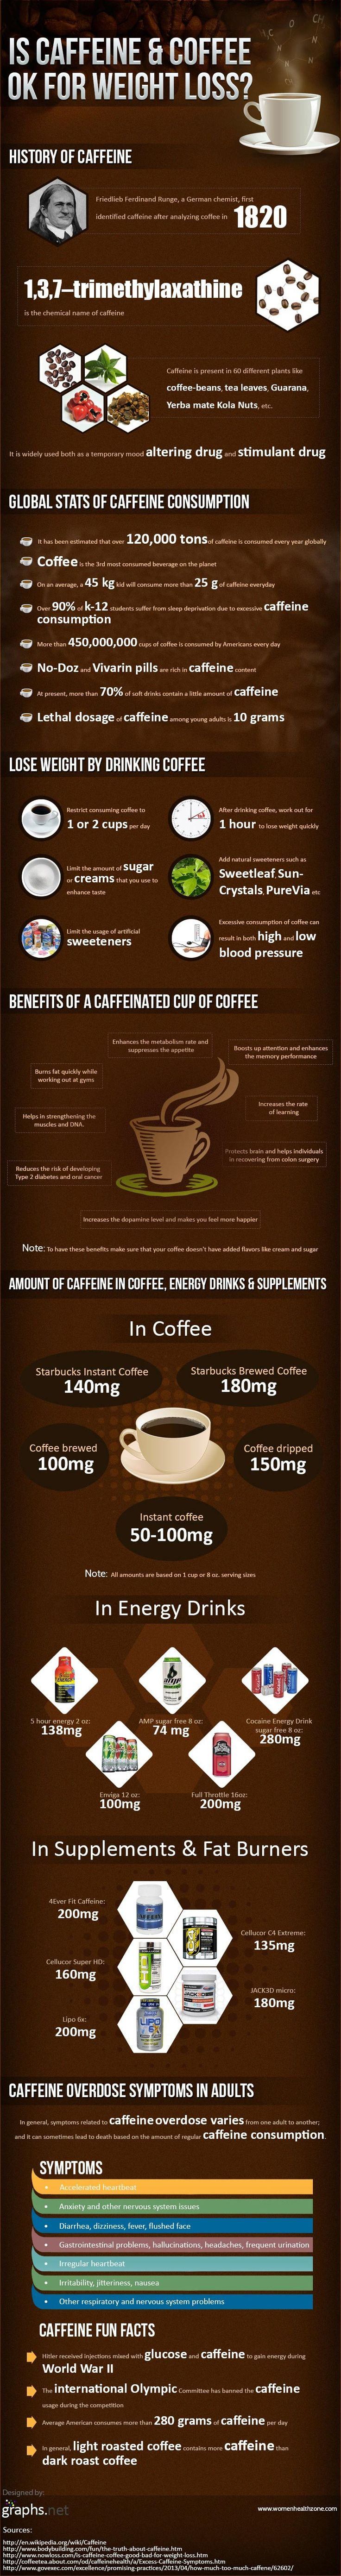 17 best images about Caffeine Infographics on Pinterest ...